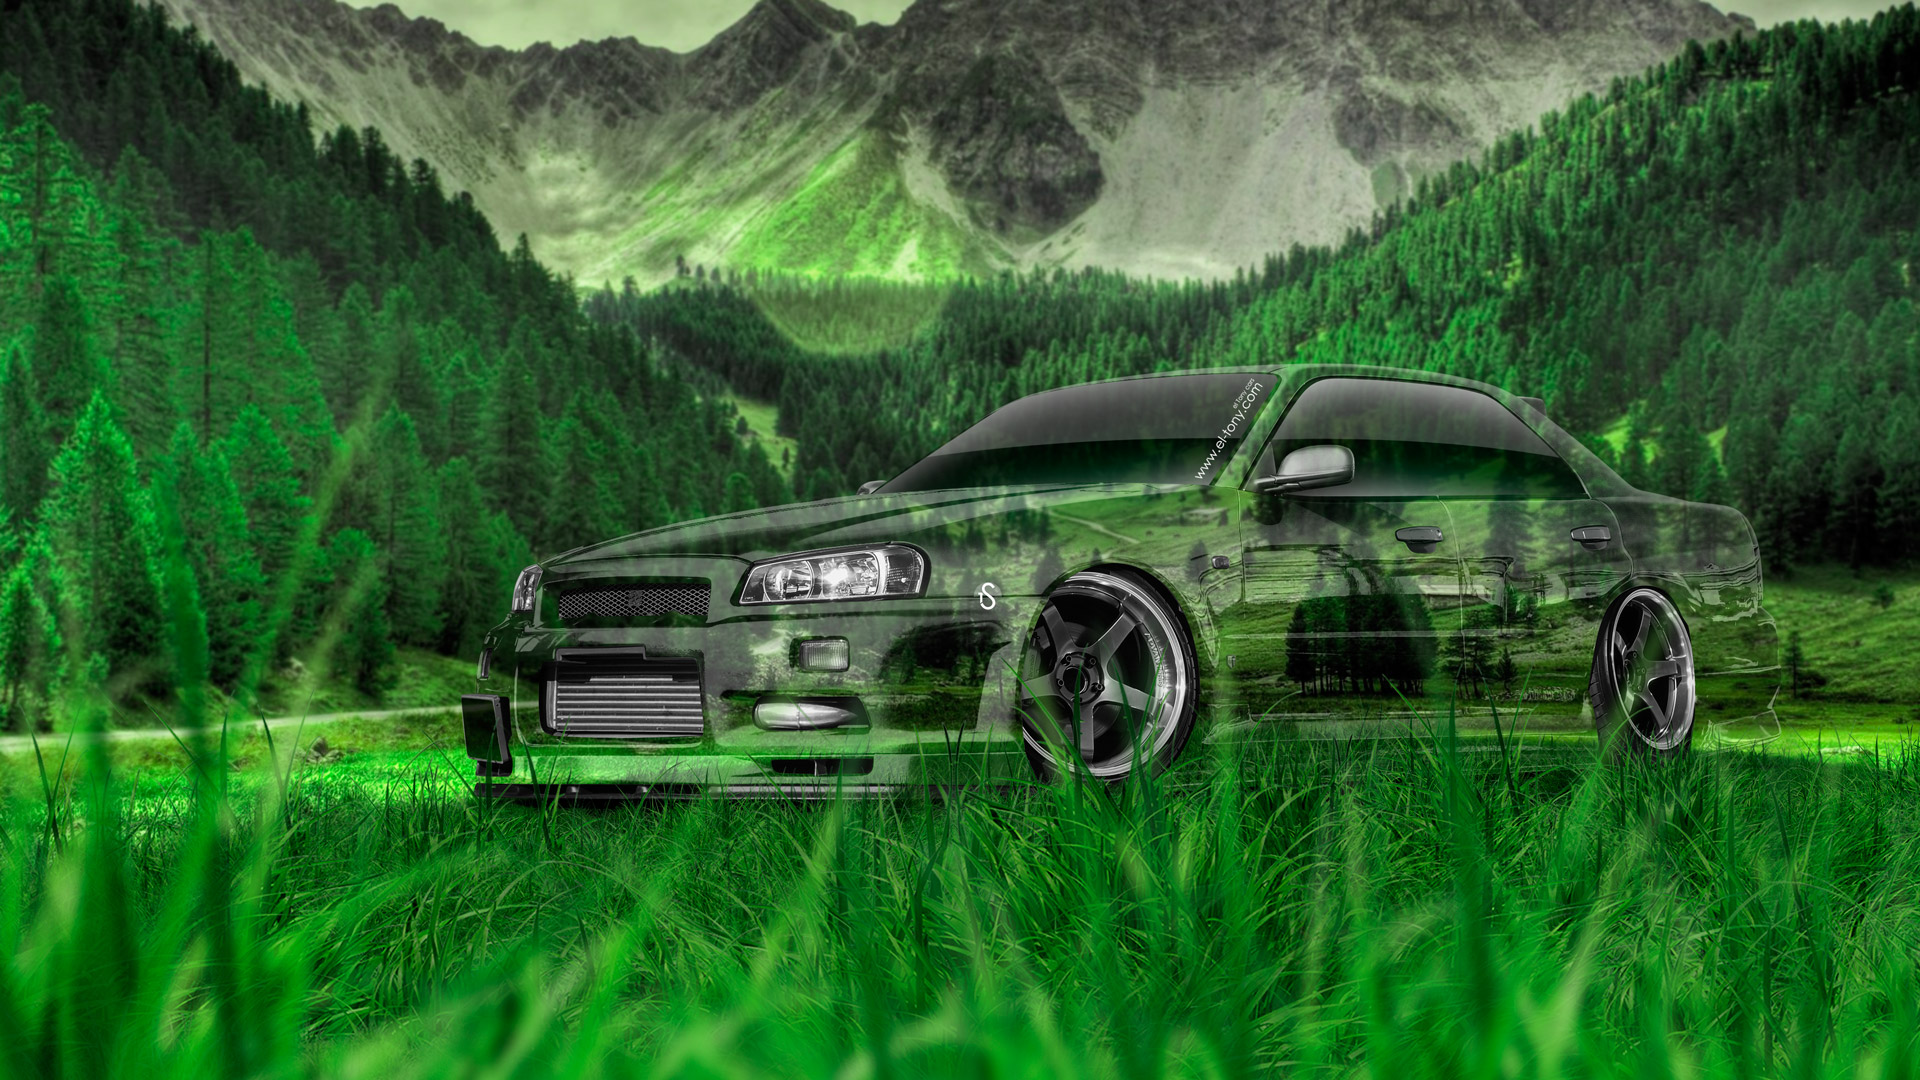 Captivating 4K Nissan Skyline GTR R34 JDM Crystal Nature Car 2015 ...